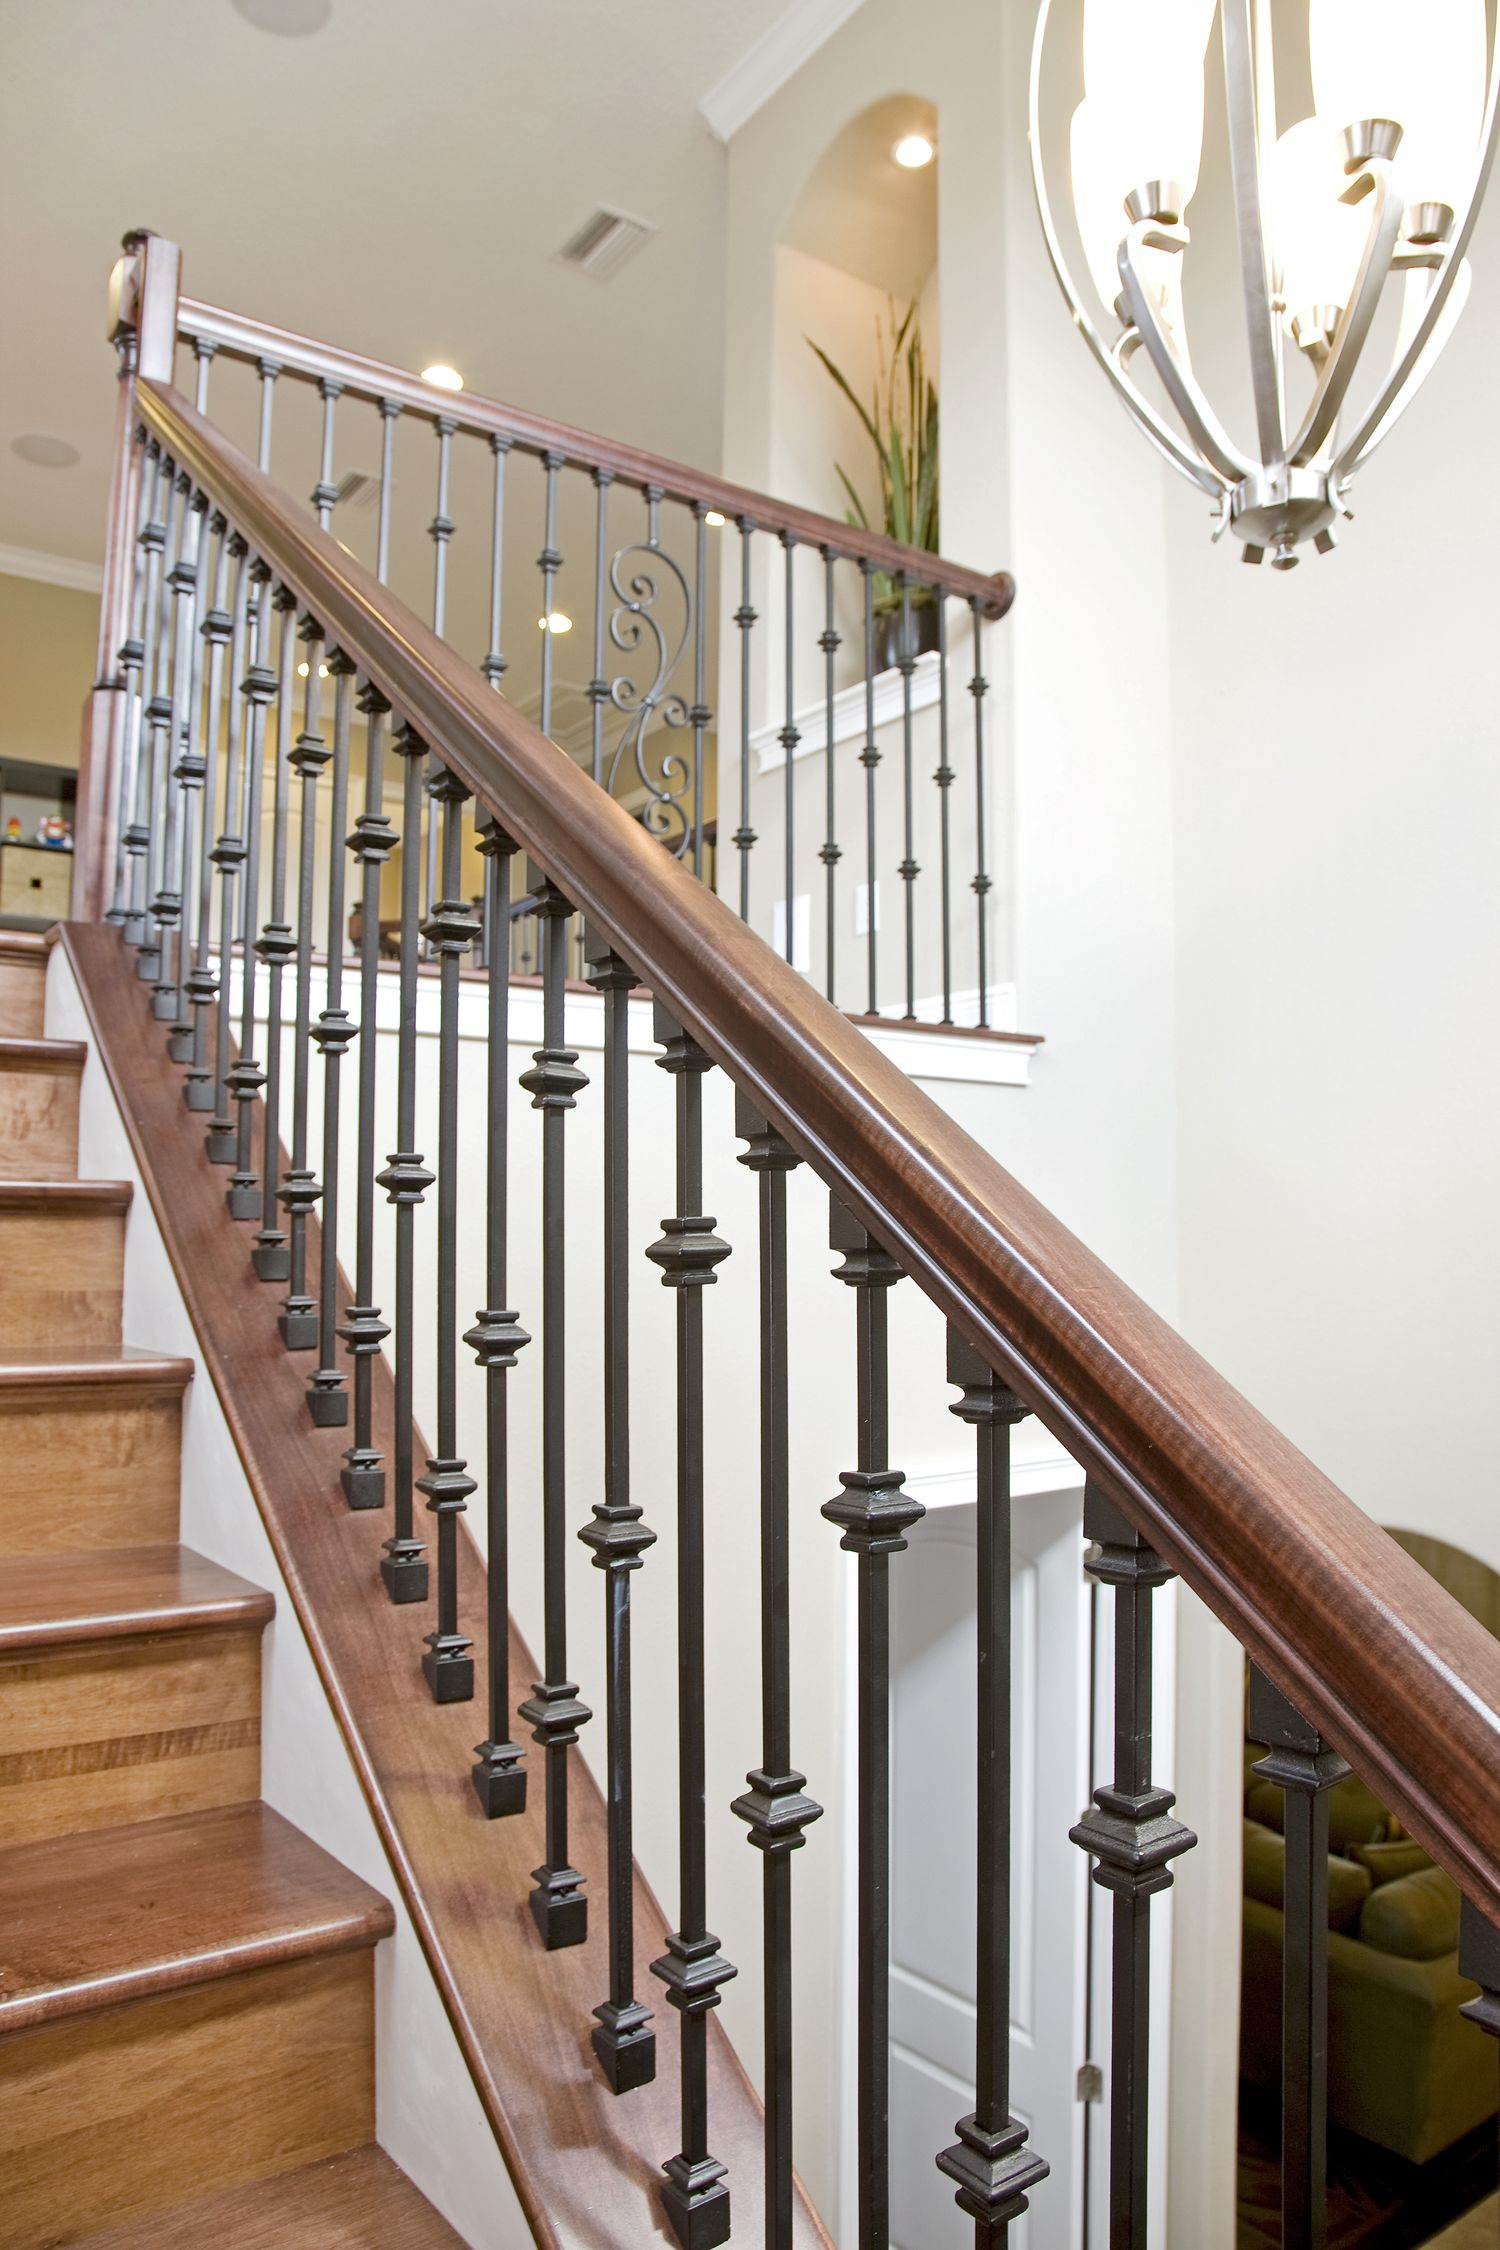 Wrought Iron Staircase Designs Bakerfield Luxury Homes Wrought Iron Stairs Bakerfield